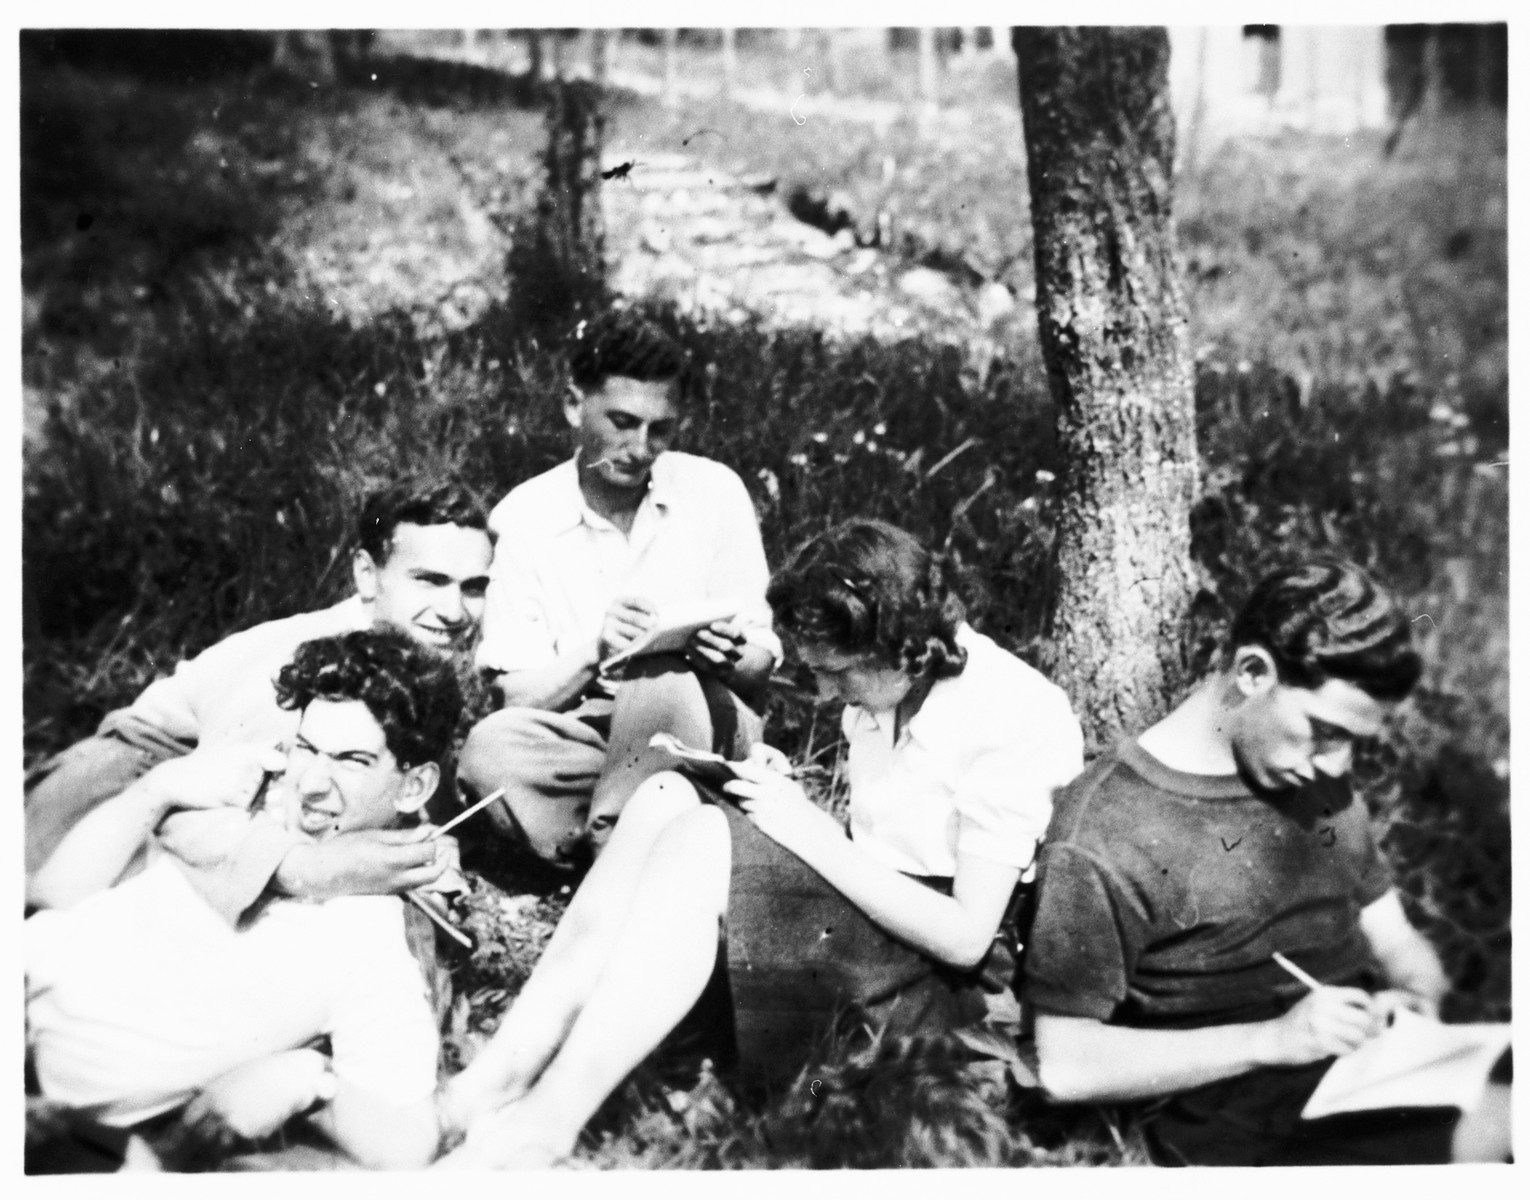 Members of the French Jewish resistance group Armée Juive, relax outside at their training camp in the Alps.  Among those pictured are Haim Hassid (alias Henri Flammant, bottom left), Georges Schneck (above Hassid), and Ado Michaelowicz (right).